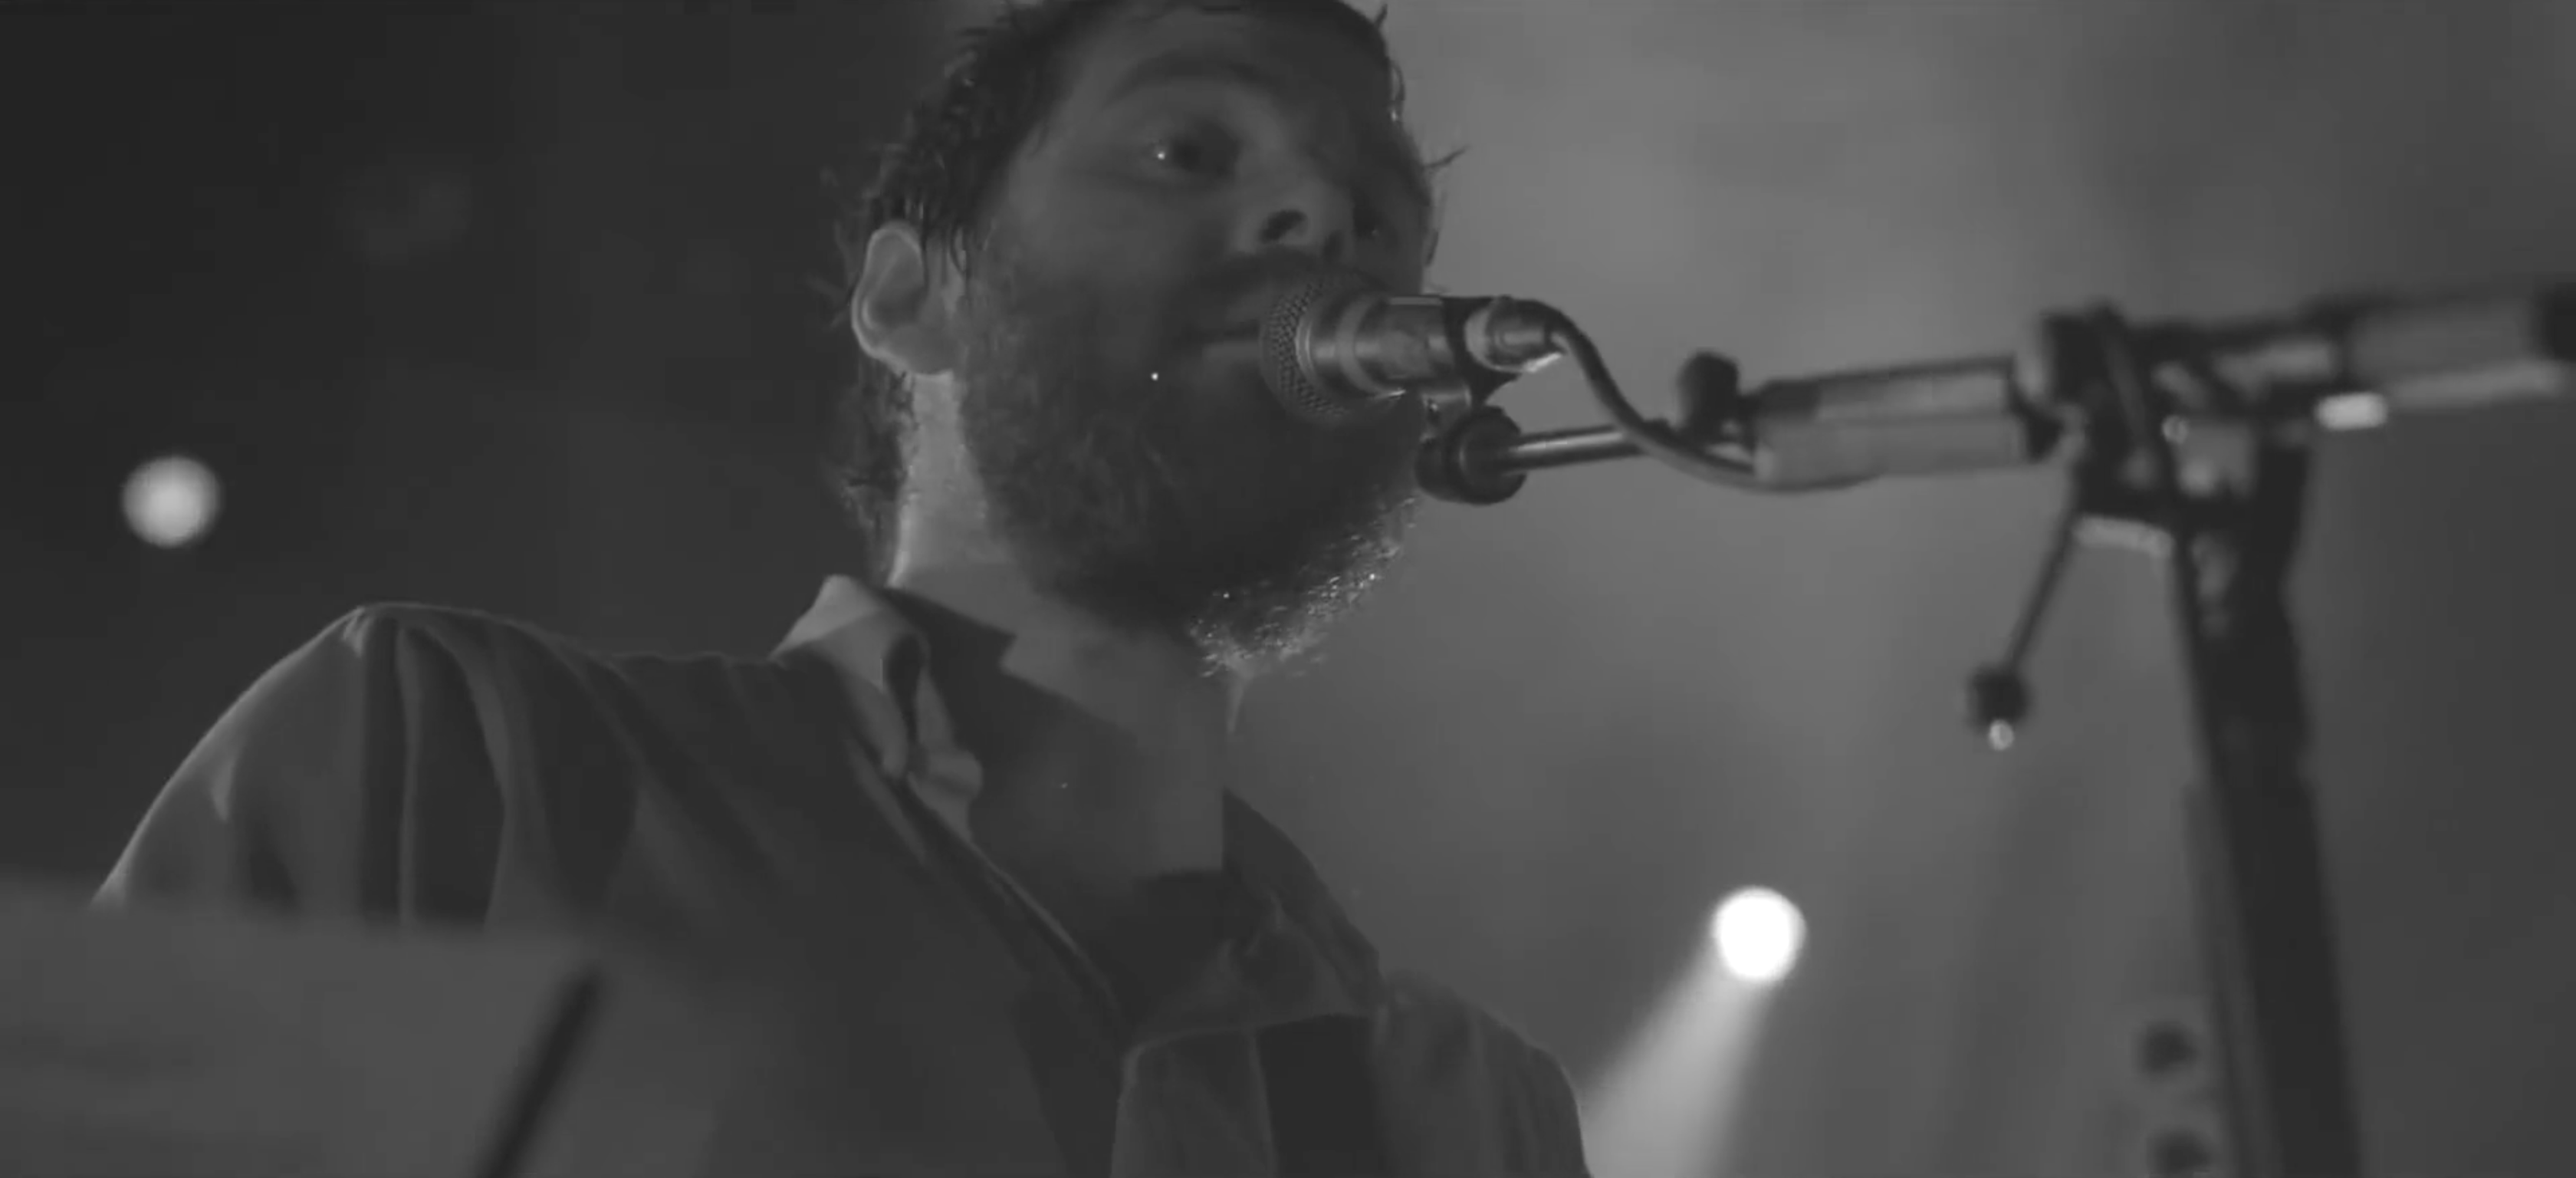 Know How to Speak Documentary & The Silence – Manchester Orchestra